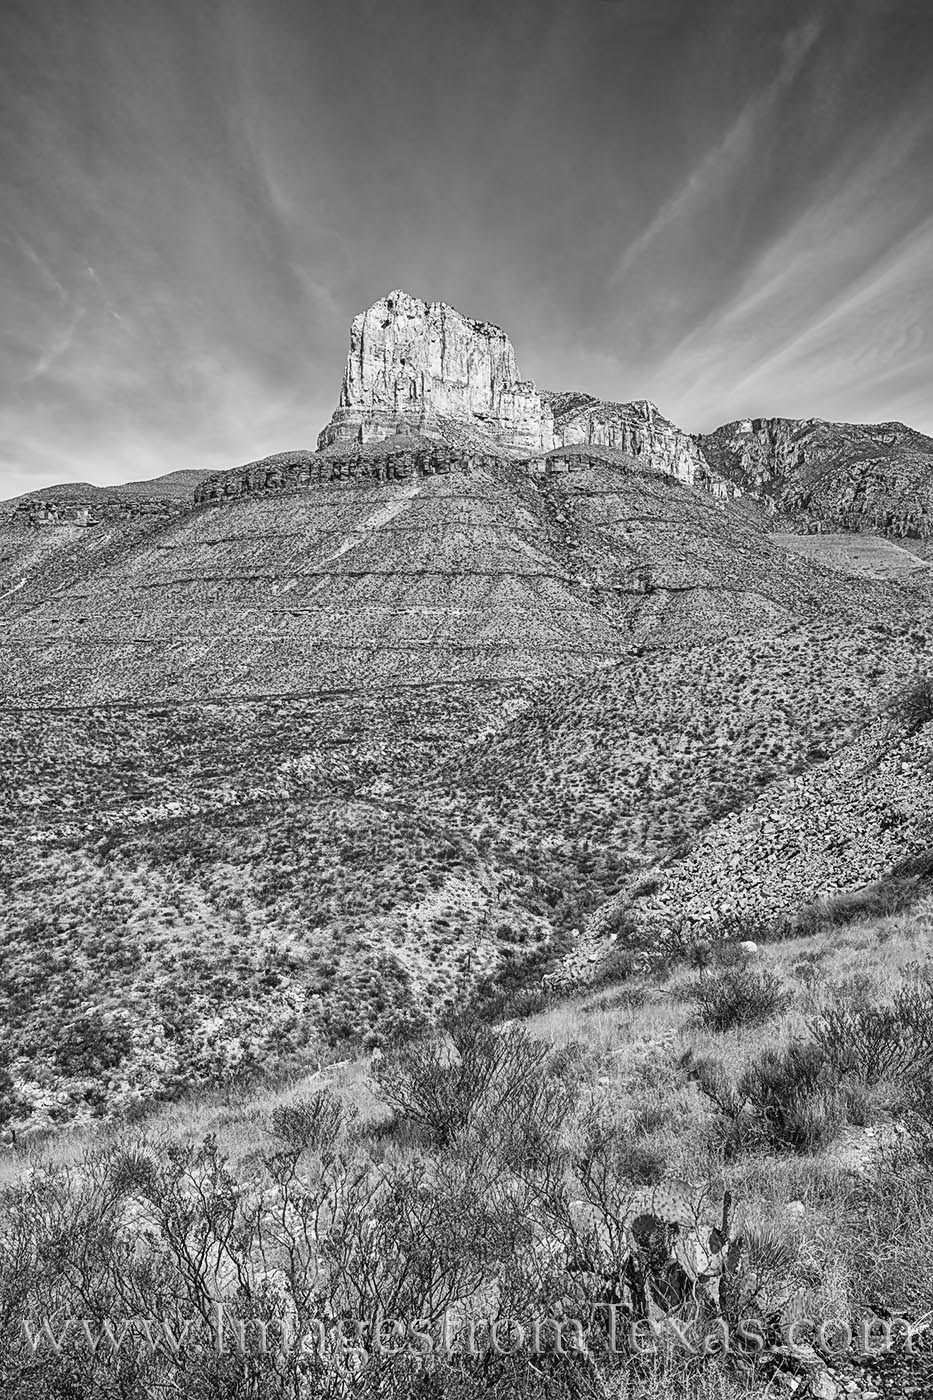 el capitan, guadalupe mountians, texas mountains, west texas, texas landscapes, chihuahuan desert, national park, texas parks, black and white, photo